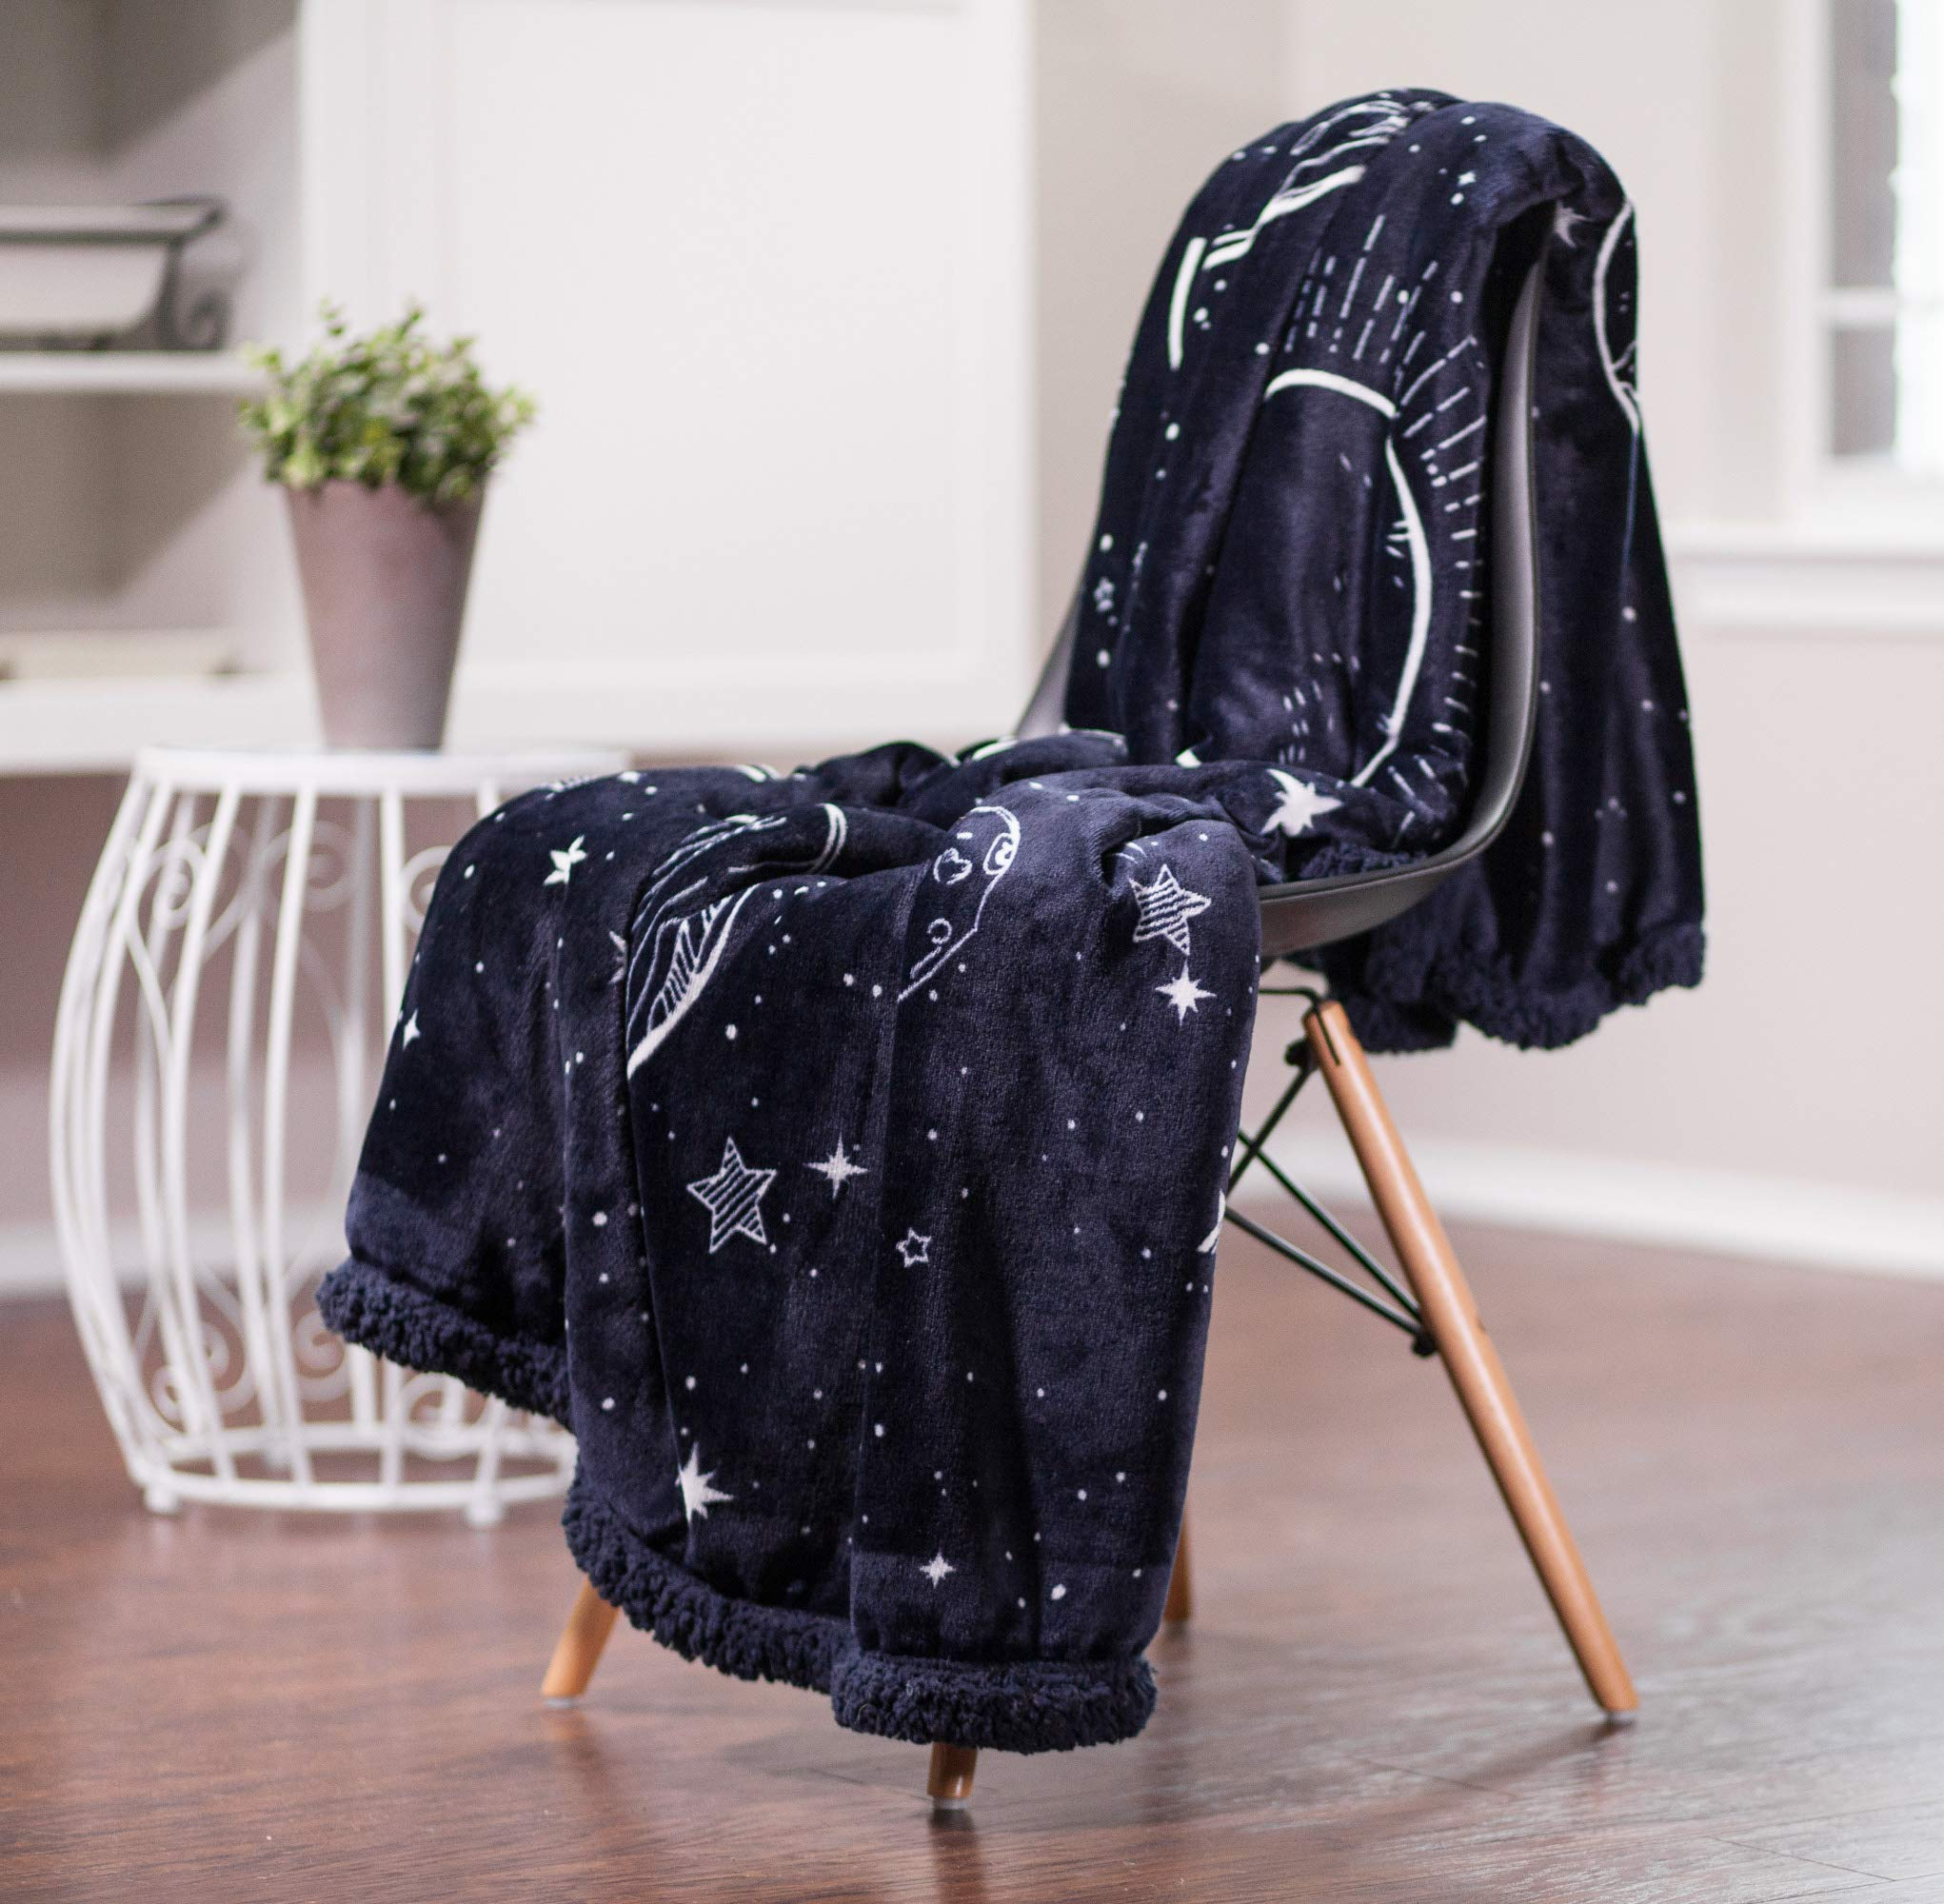 Chanasya Super Soft Solar System Galaxy Star Space Print Throw Blanket| Featuring All Nine Planets Orbiting The Sun Including Pluto Dark Navy Charcoal Reversible Blanket for Bed Couch Chair -DarkNavy by Chanasya (Image #5)